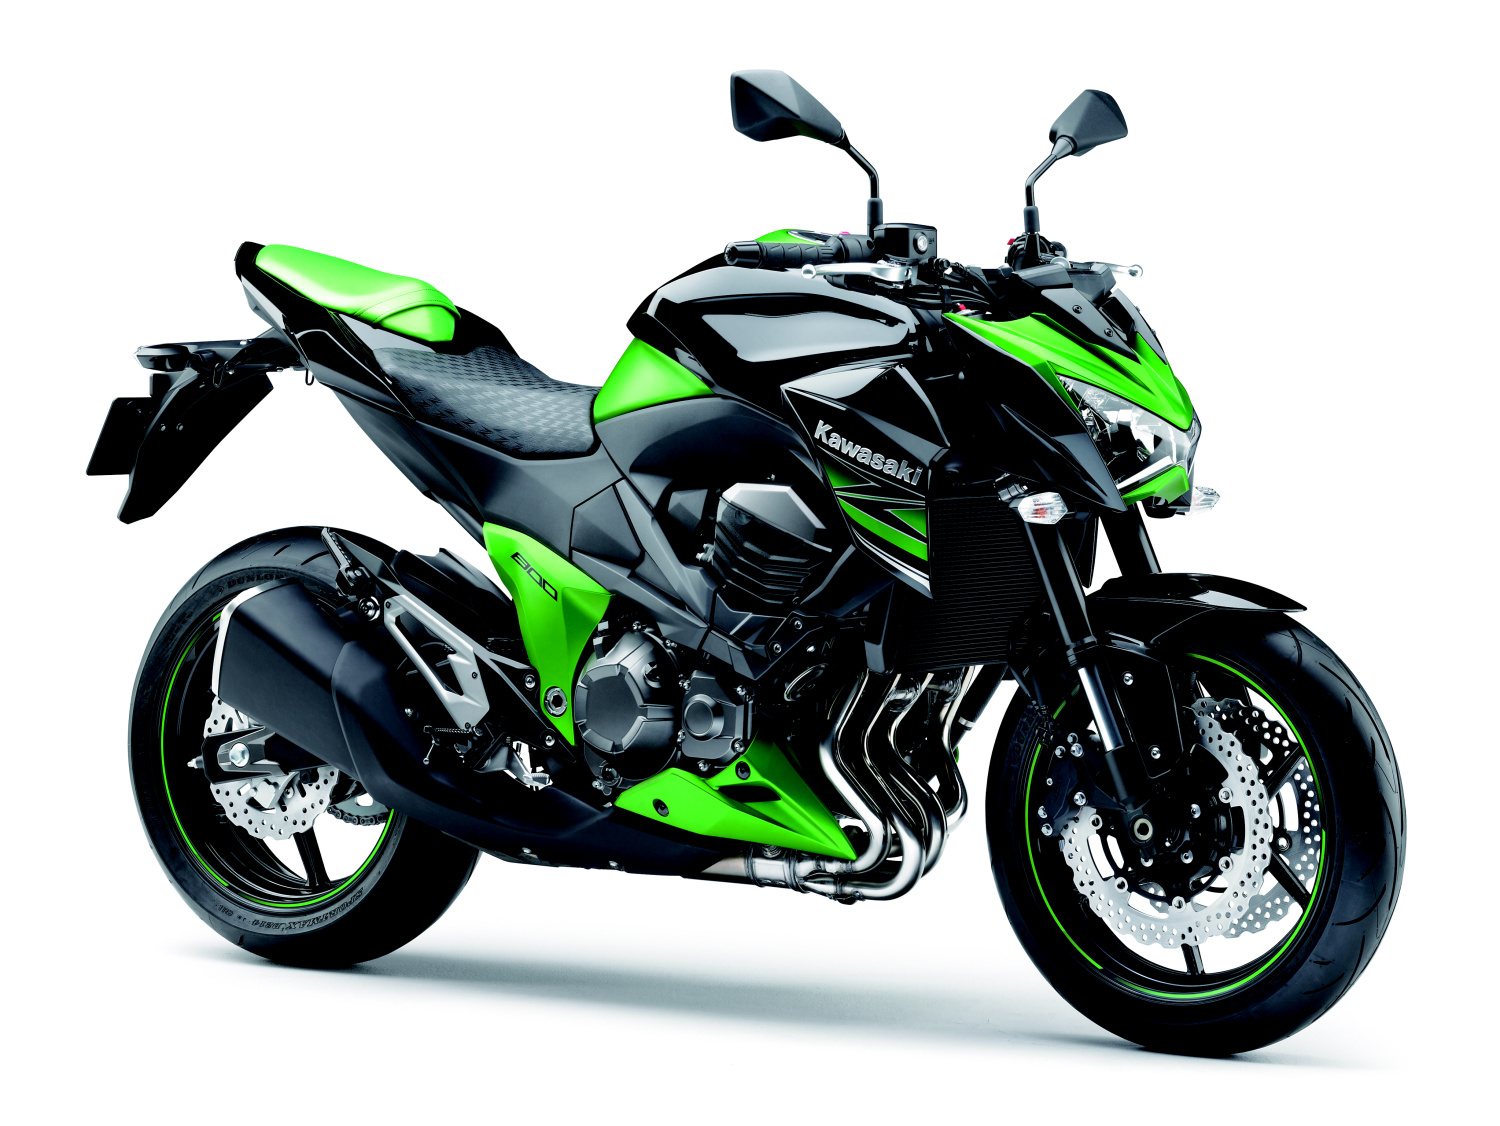 This latest Kawasaki Z250 Priced Rp 48 jt | Motorcycle and